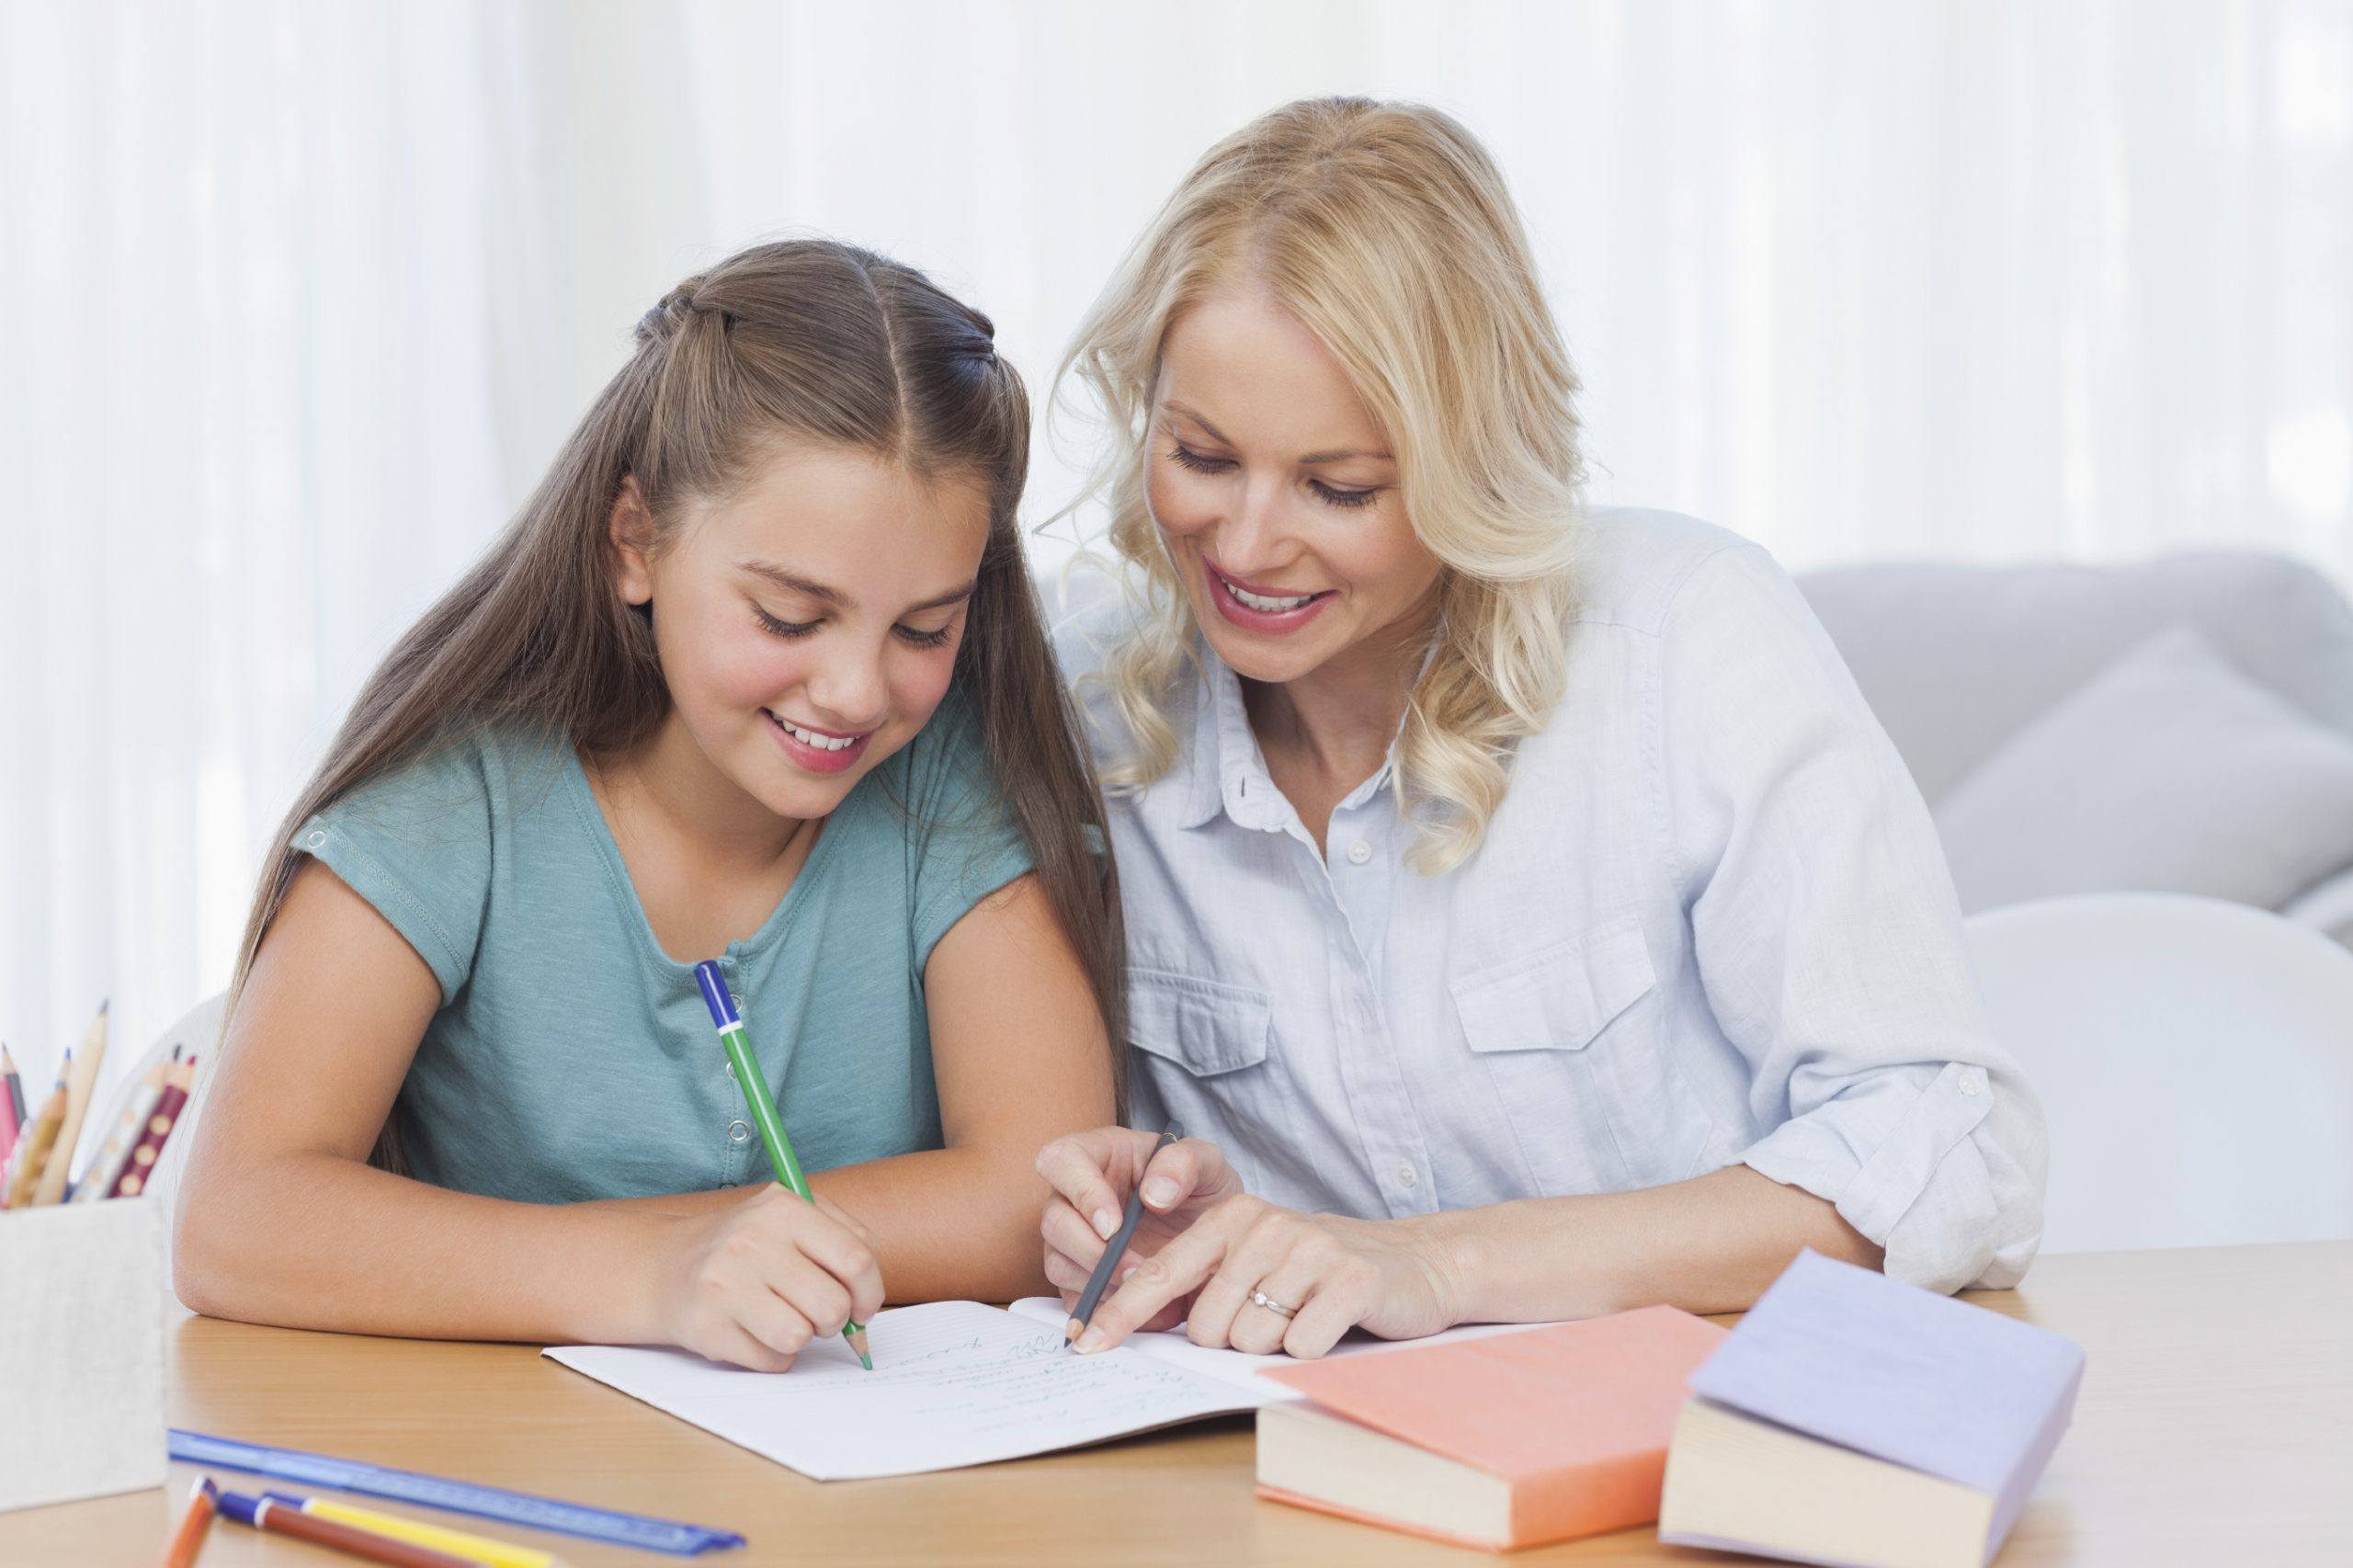 3 Best Study Habits For Spelling Tests – Discover The Facts